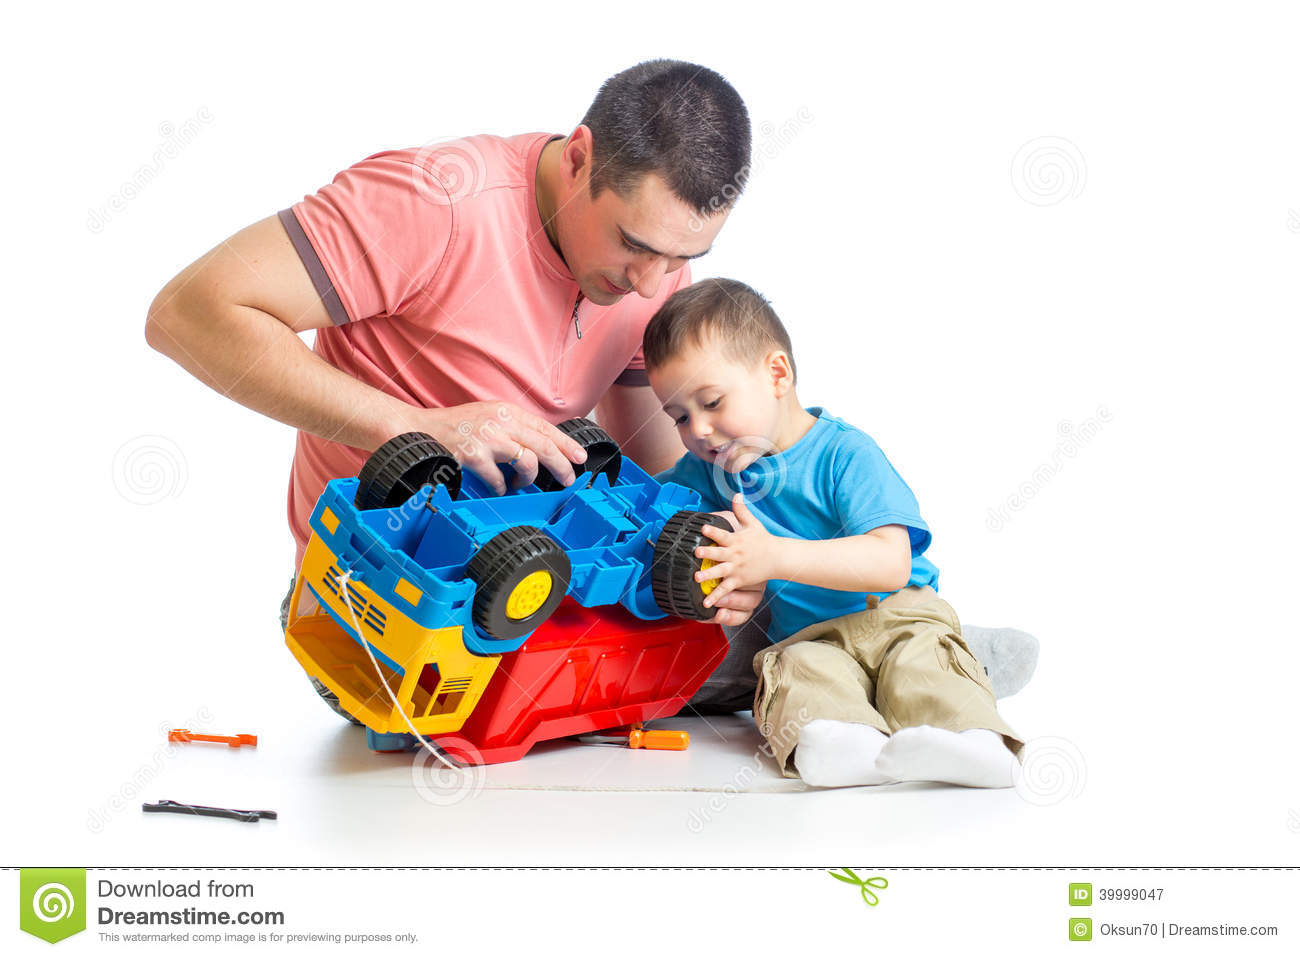 Boy Toys For Dads : Kid boy and dad repair toy trunk stock photo image